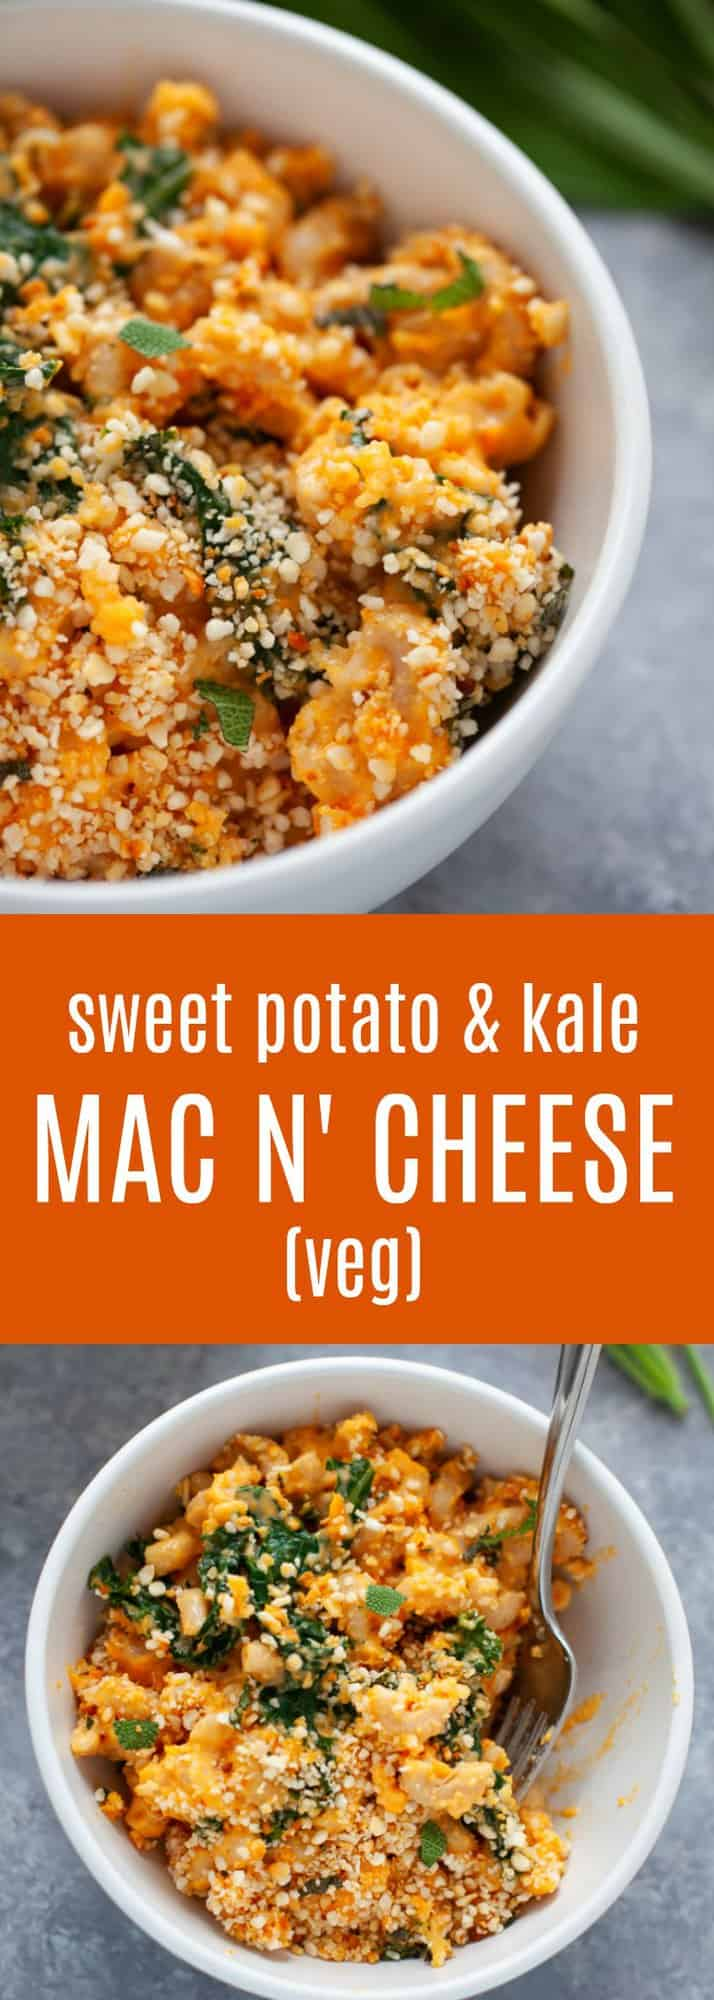 An inspired and elevated classic comfort food staple, this sweet potato mac and cheese with kale is packed with the sweet taste of sweet potato and the earthy, savory flavor of sage. Plus, the added veggies help make this a more balanced pasta dish! #macandcheese #sweetpotato #fall #vegetarian #healthy